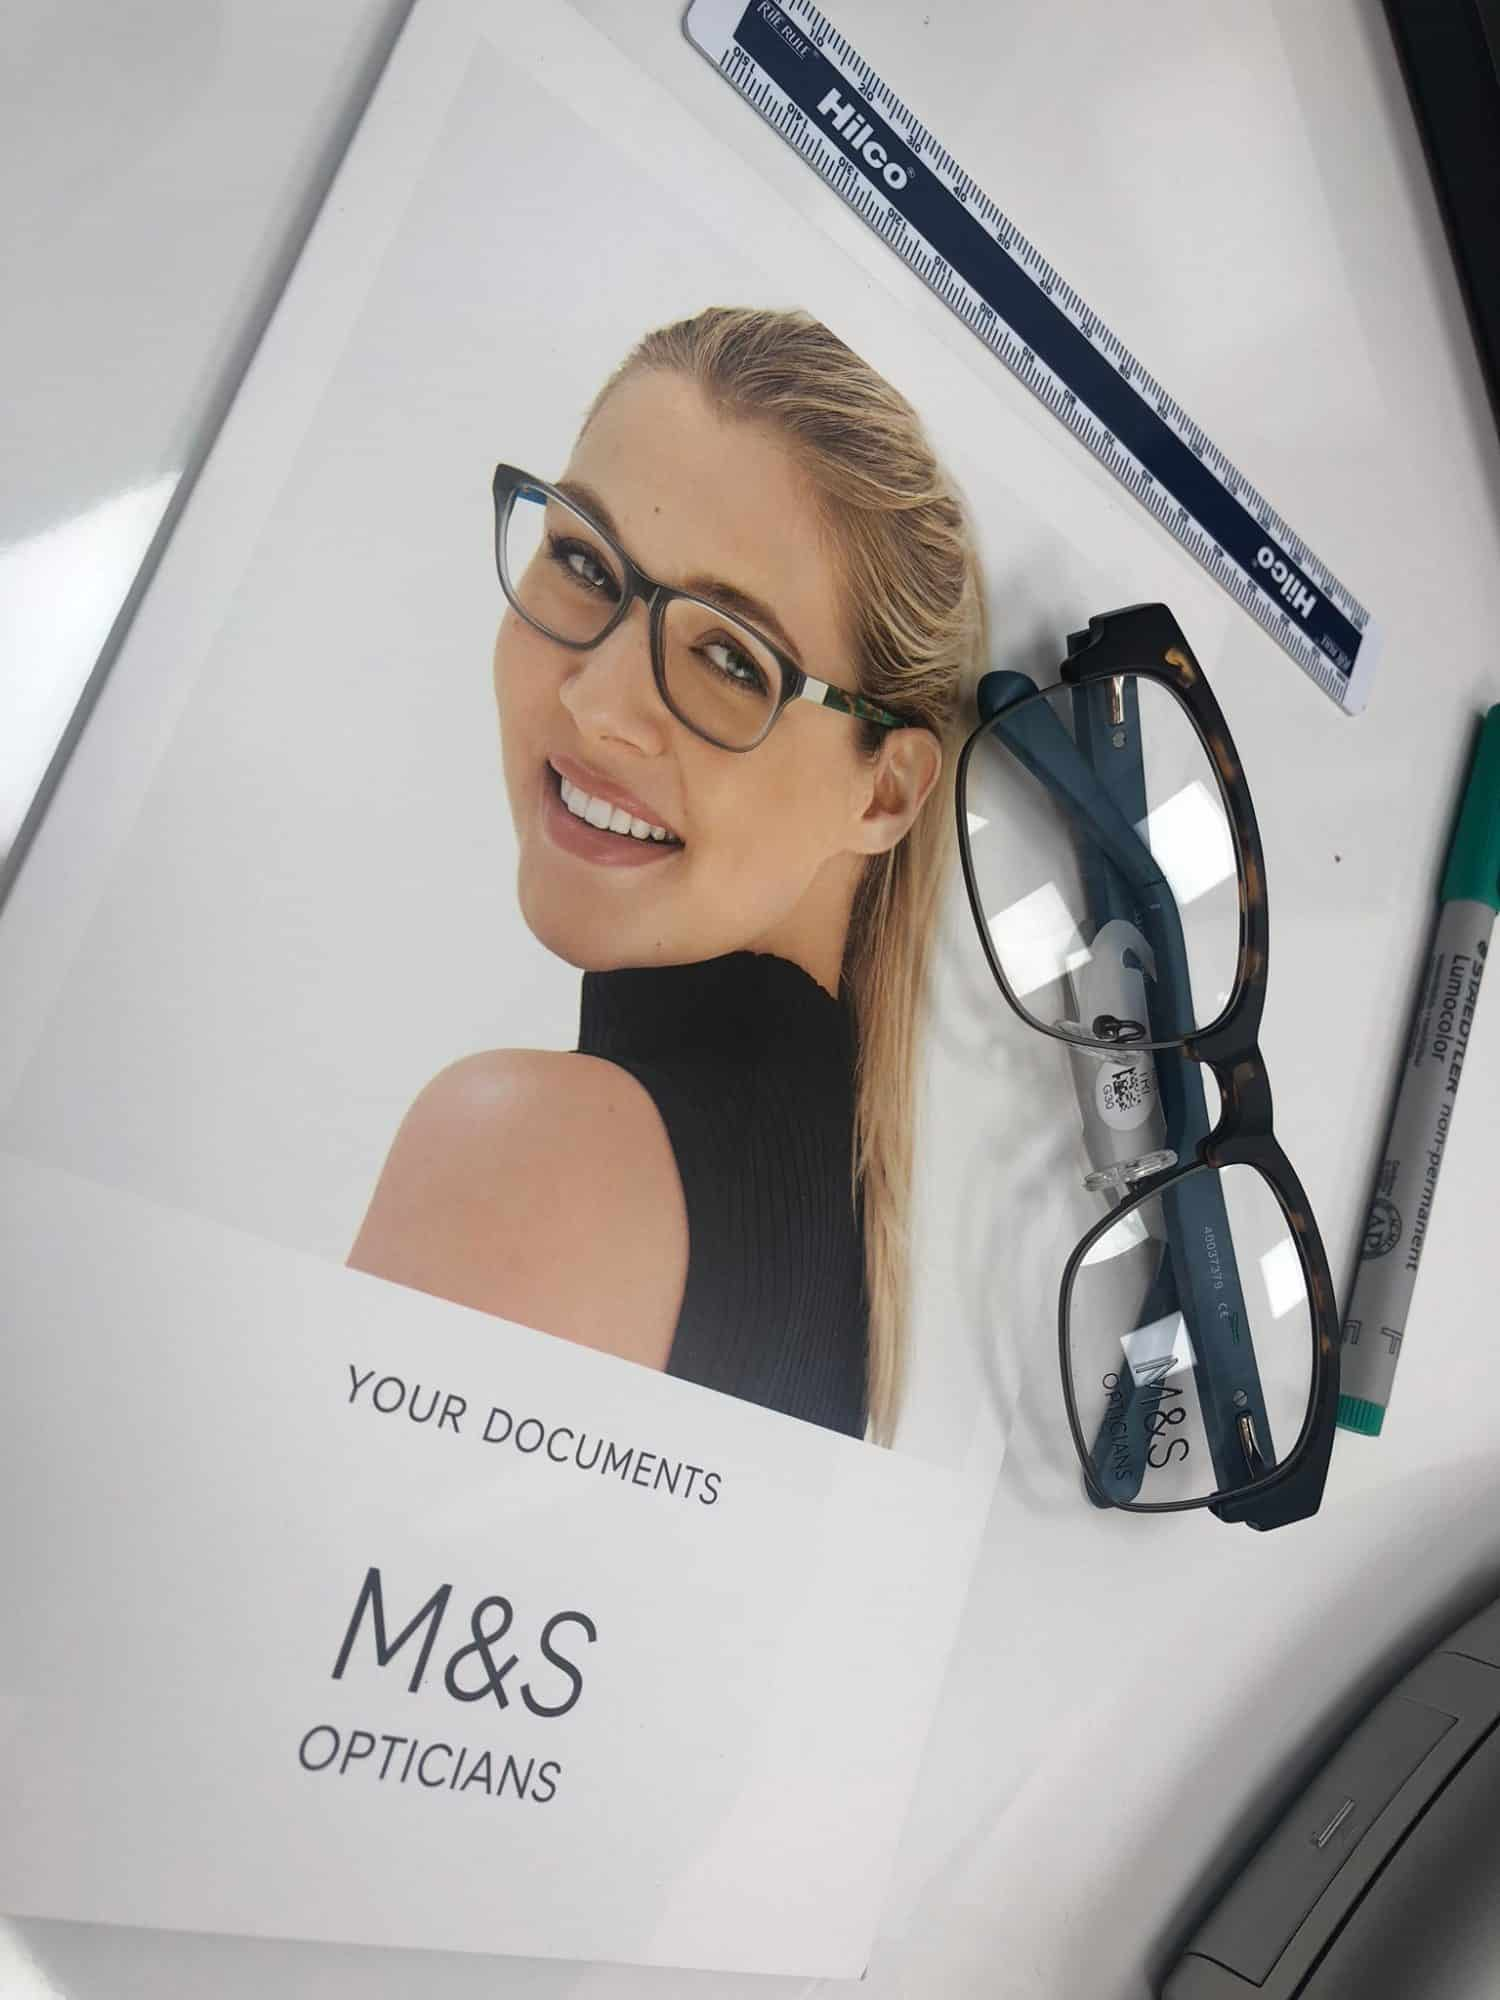 M&S Opticians for eye test and designer glasses